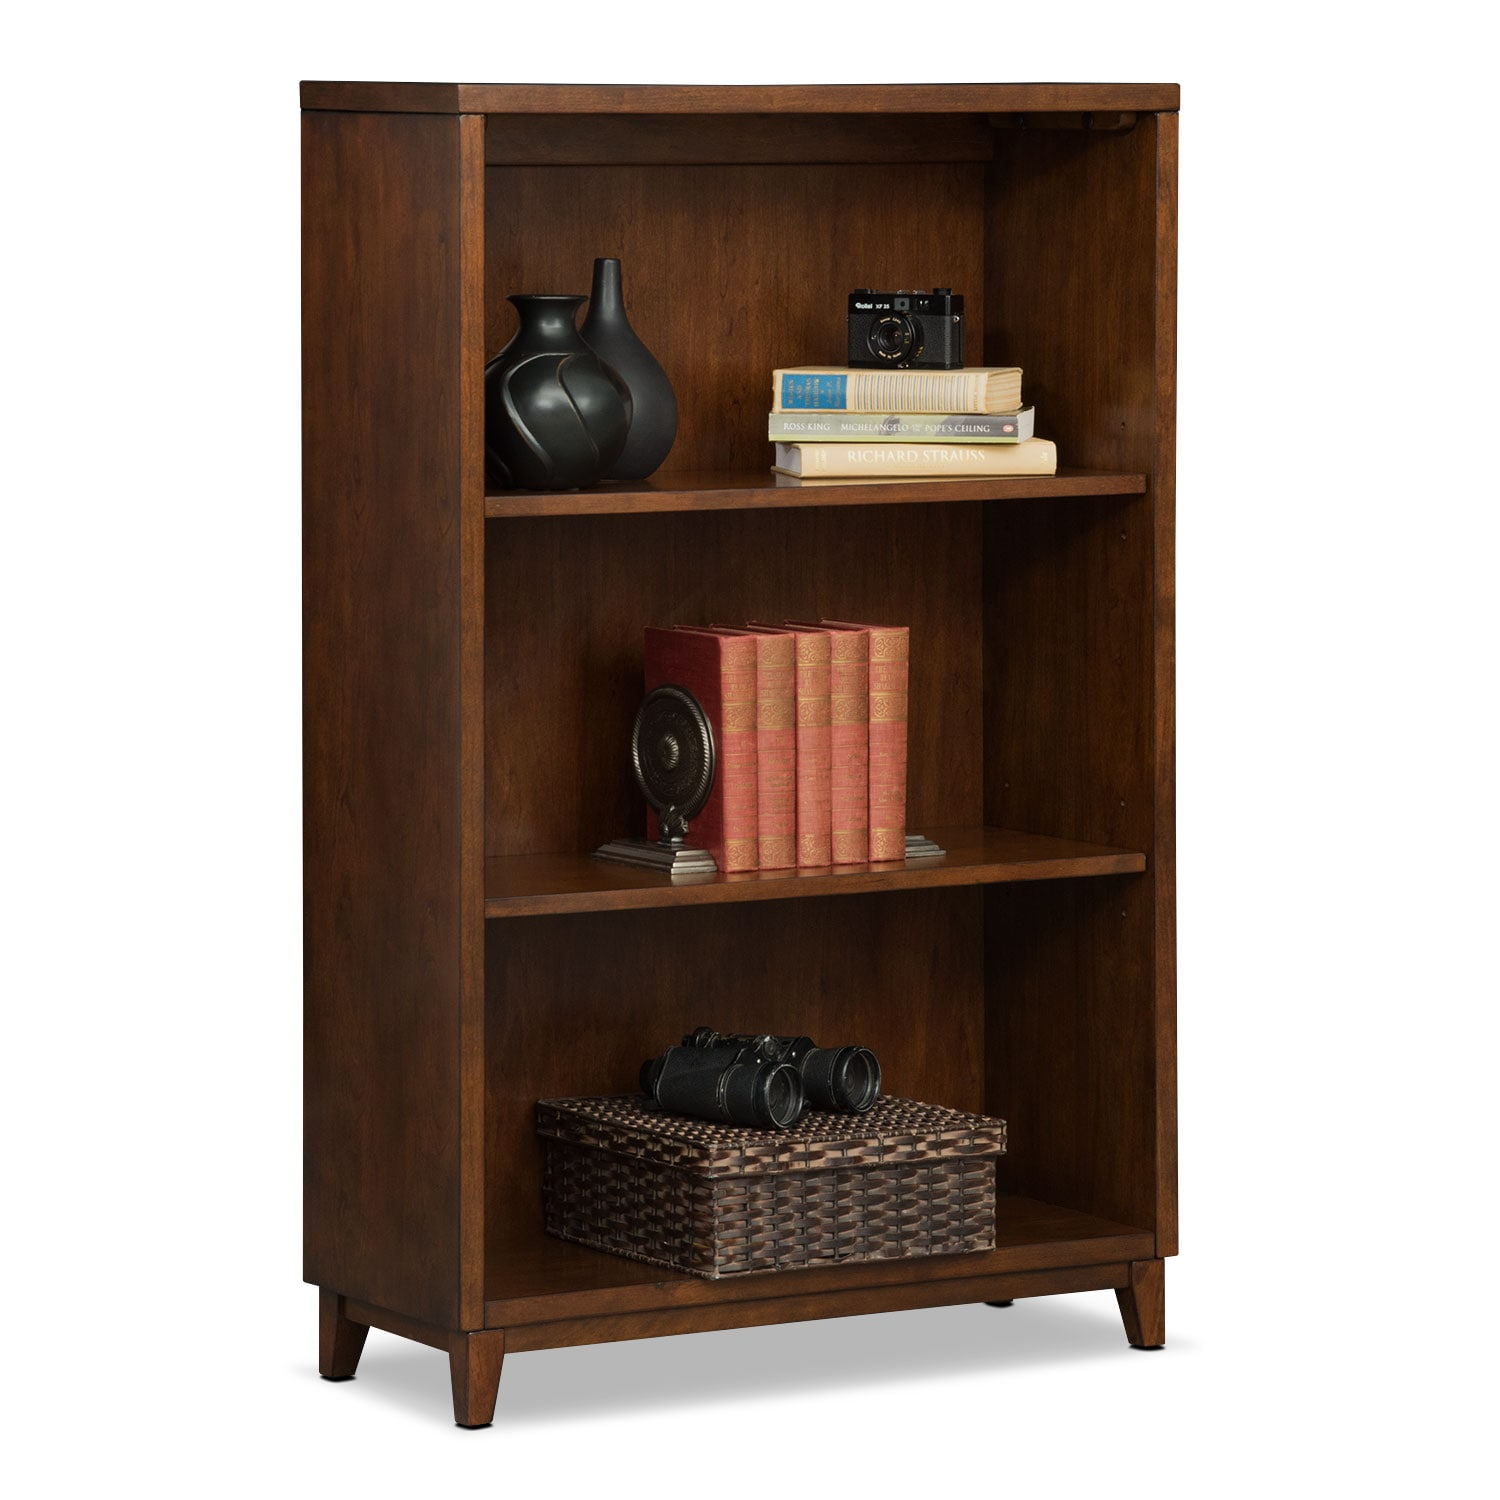 "Oslo 46"" Bookcase - Cherry"